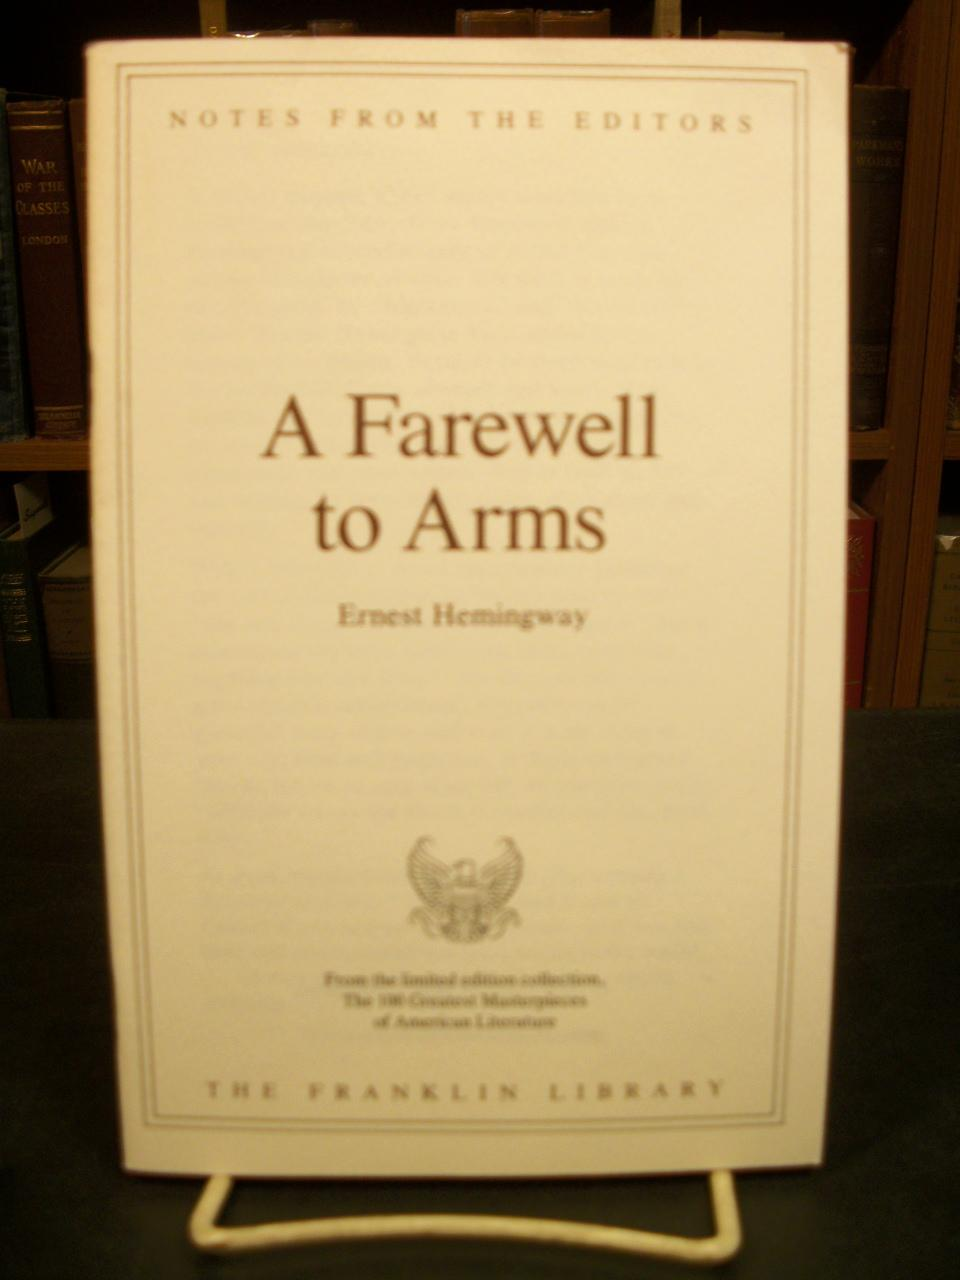 a farewell to arms by ernest hemingway abebooks